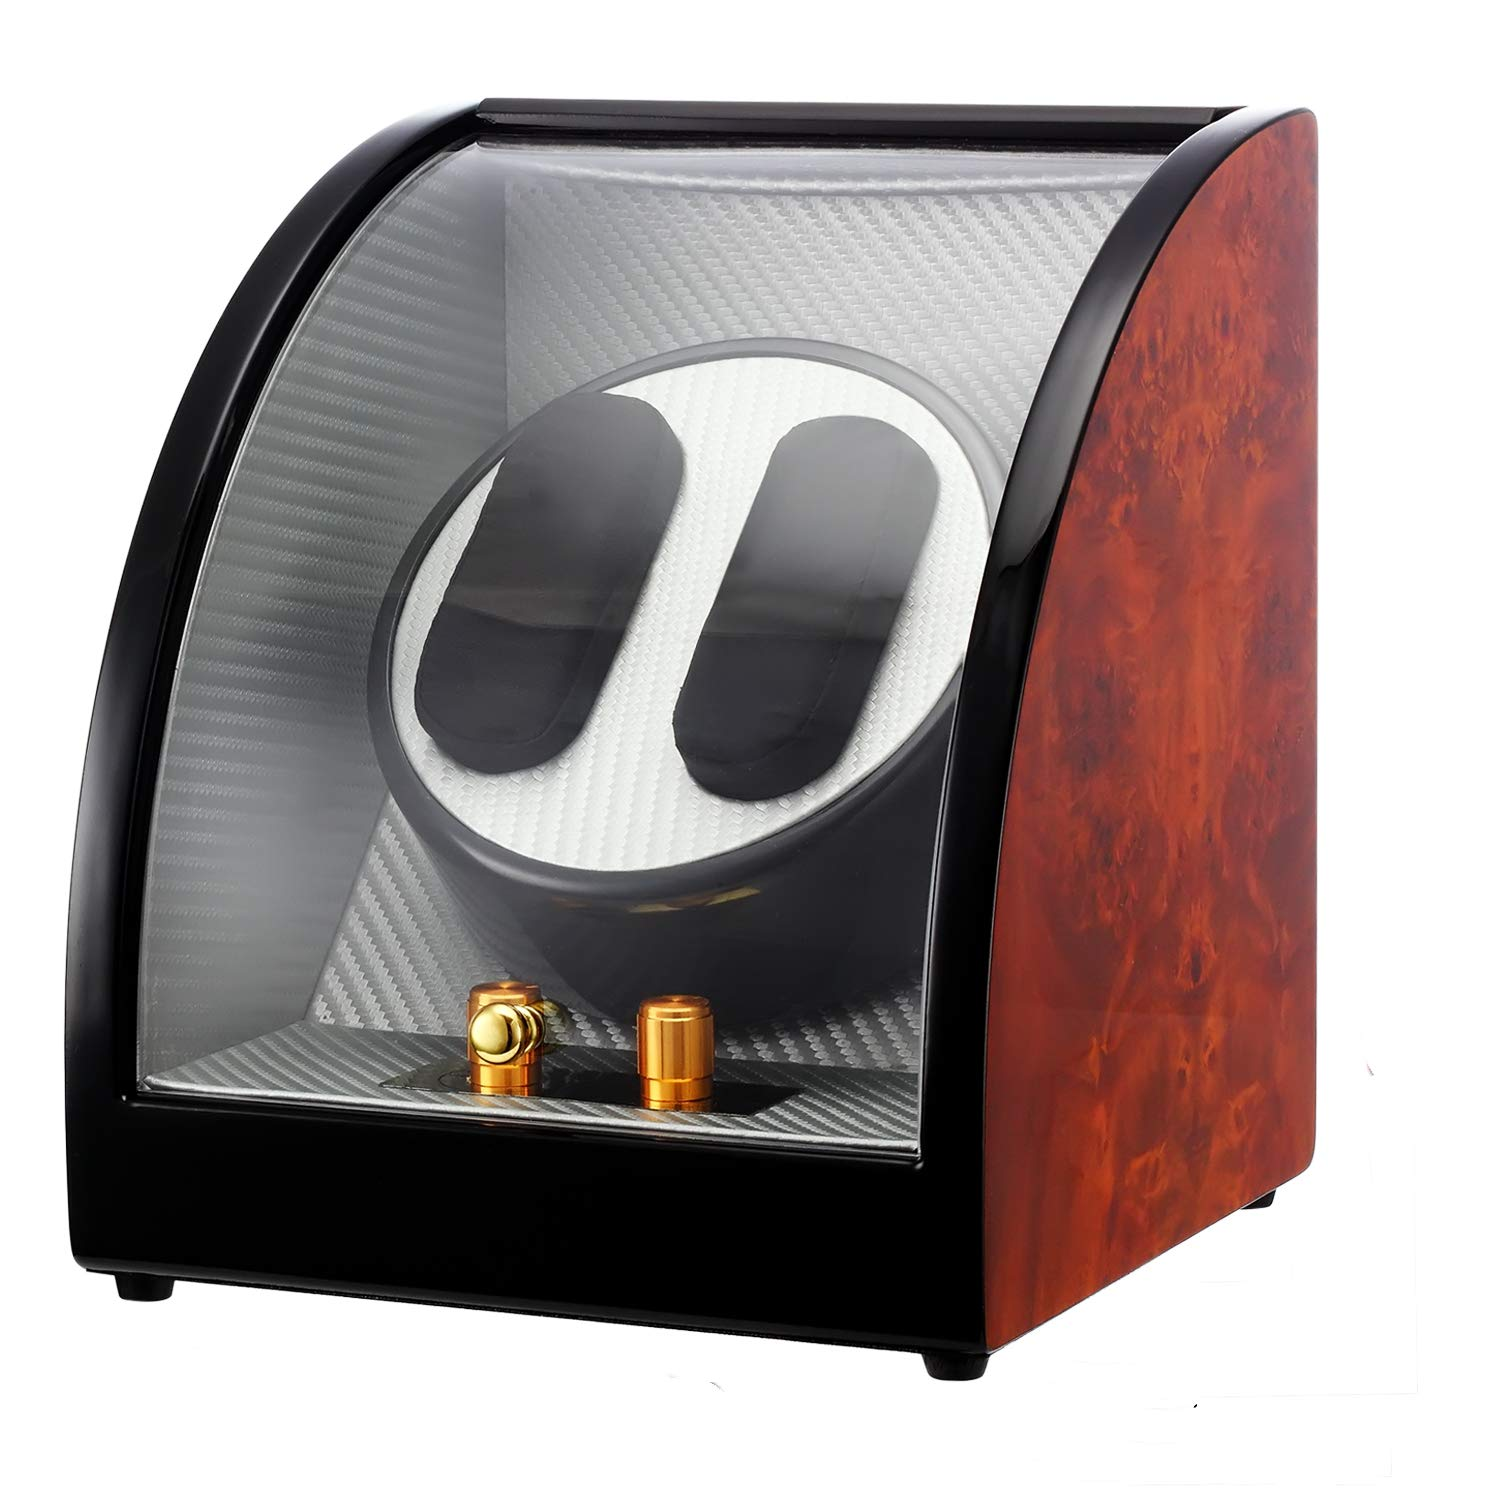 CHIYODA Automatic Double Watch Winder-12 Rotation Modes